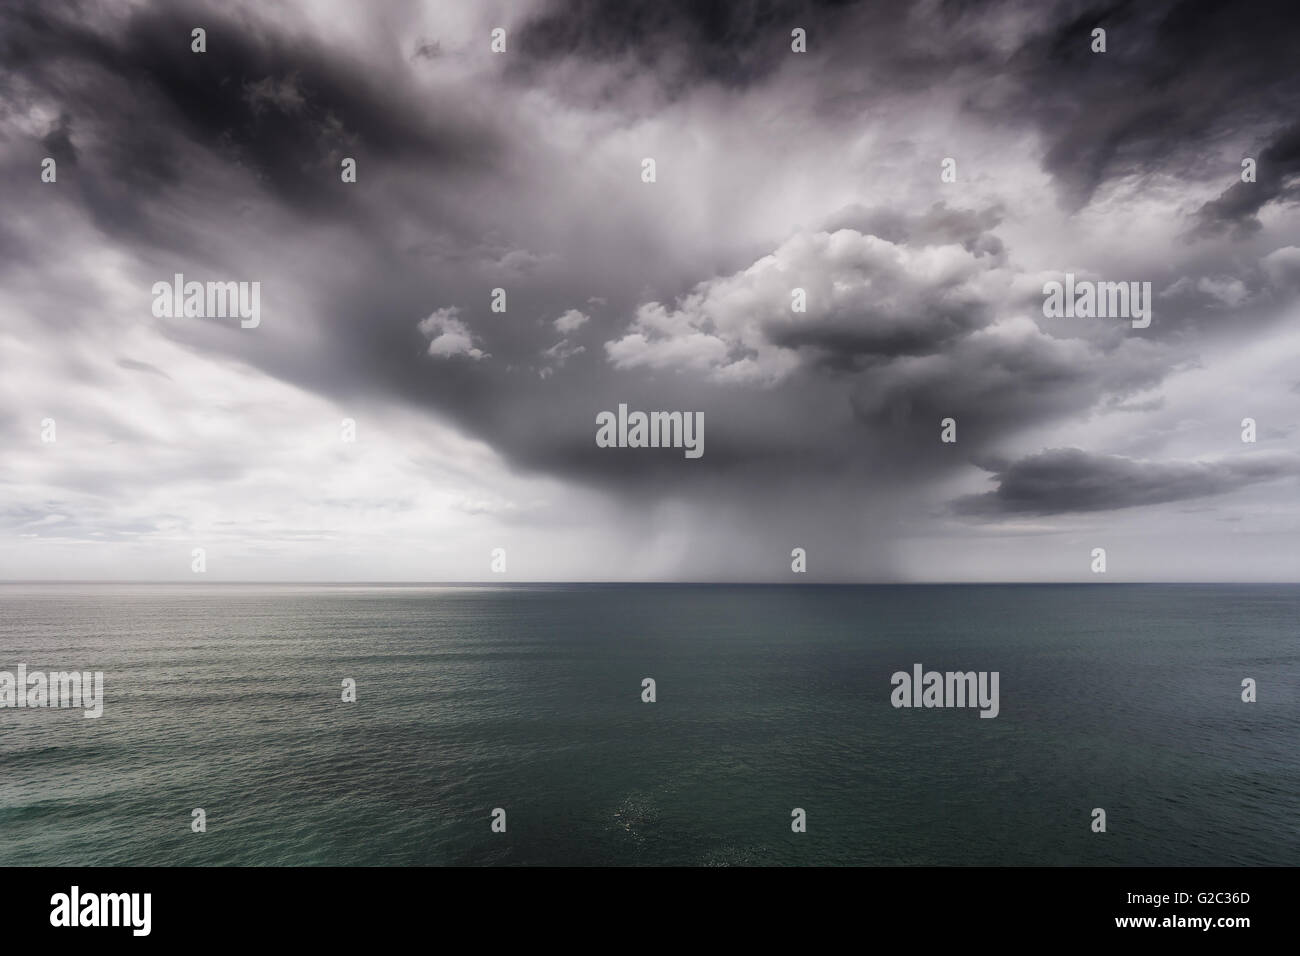 rain and stormy cloud on the sea - Stock Image